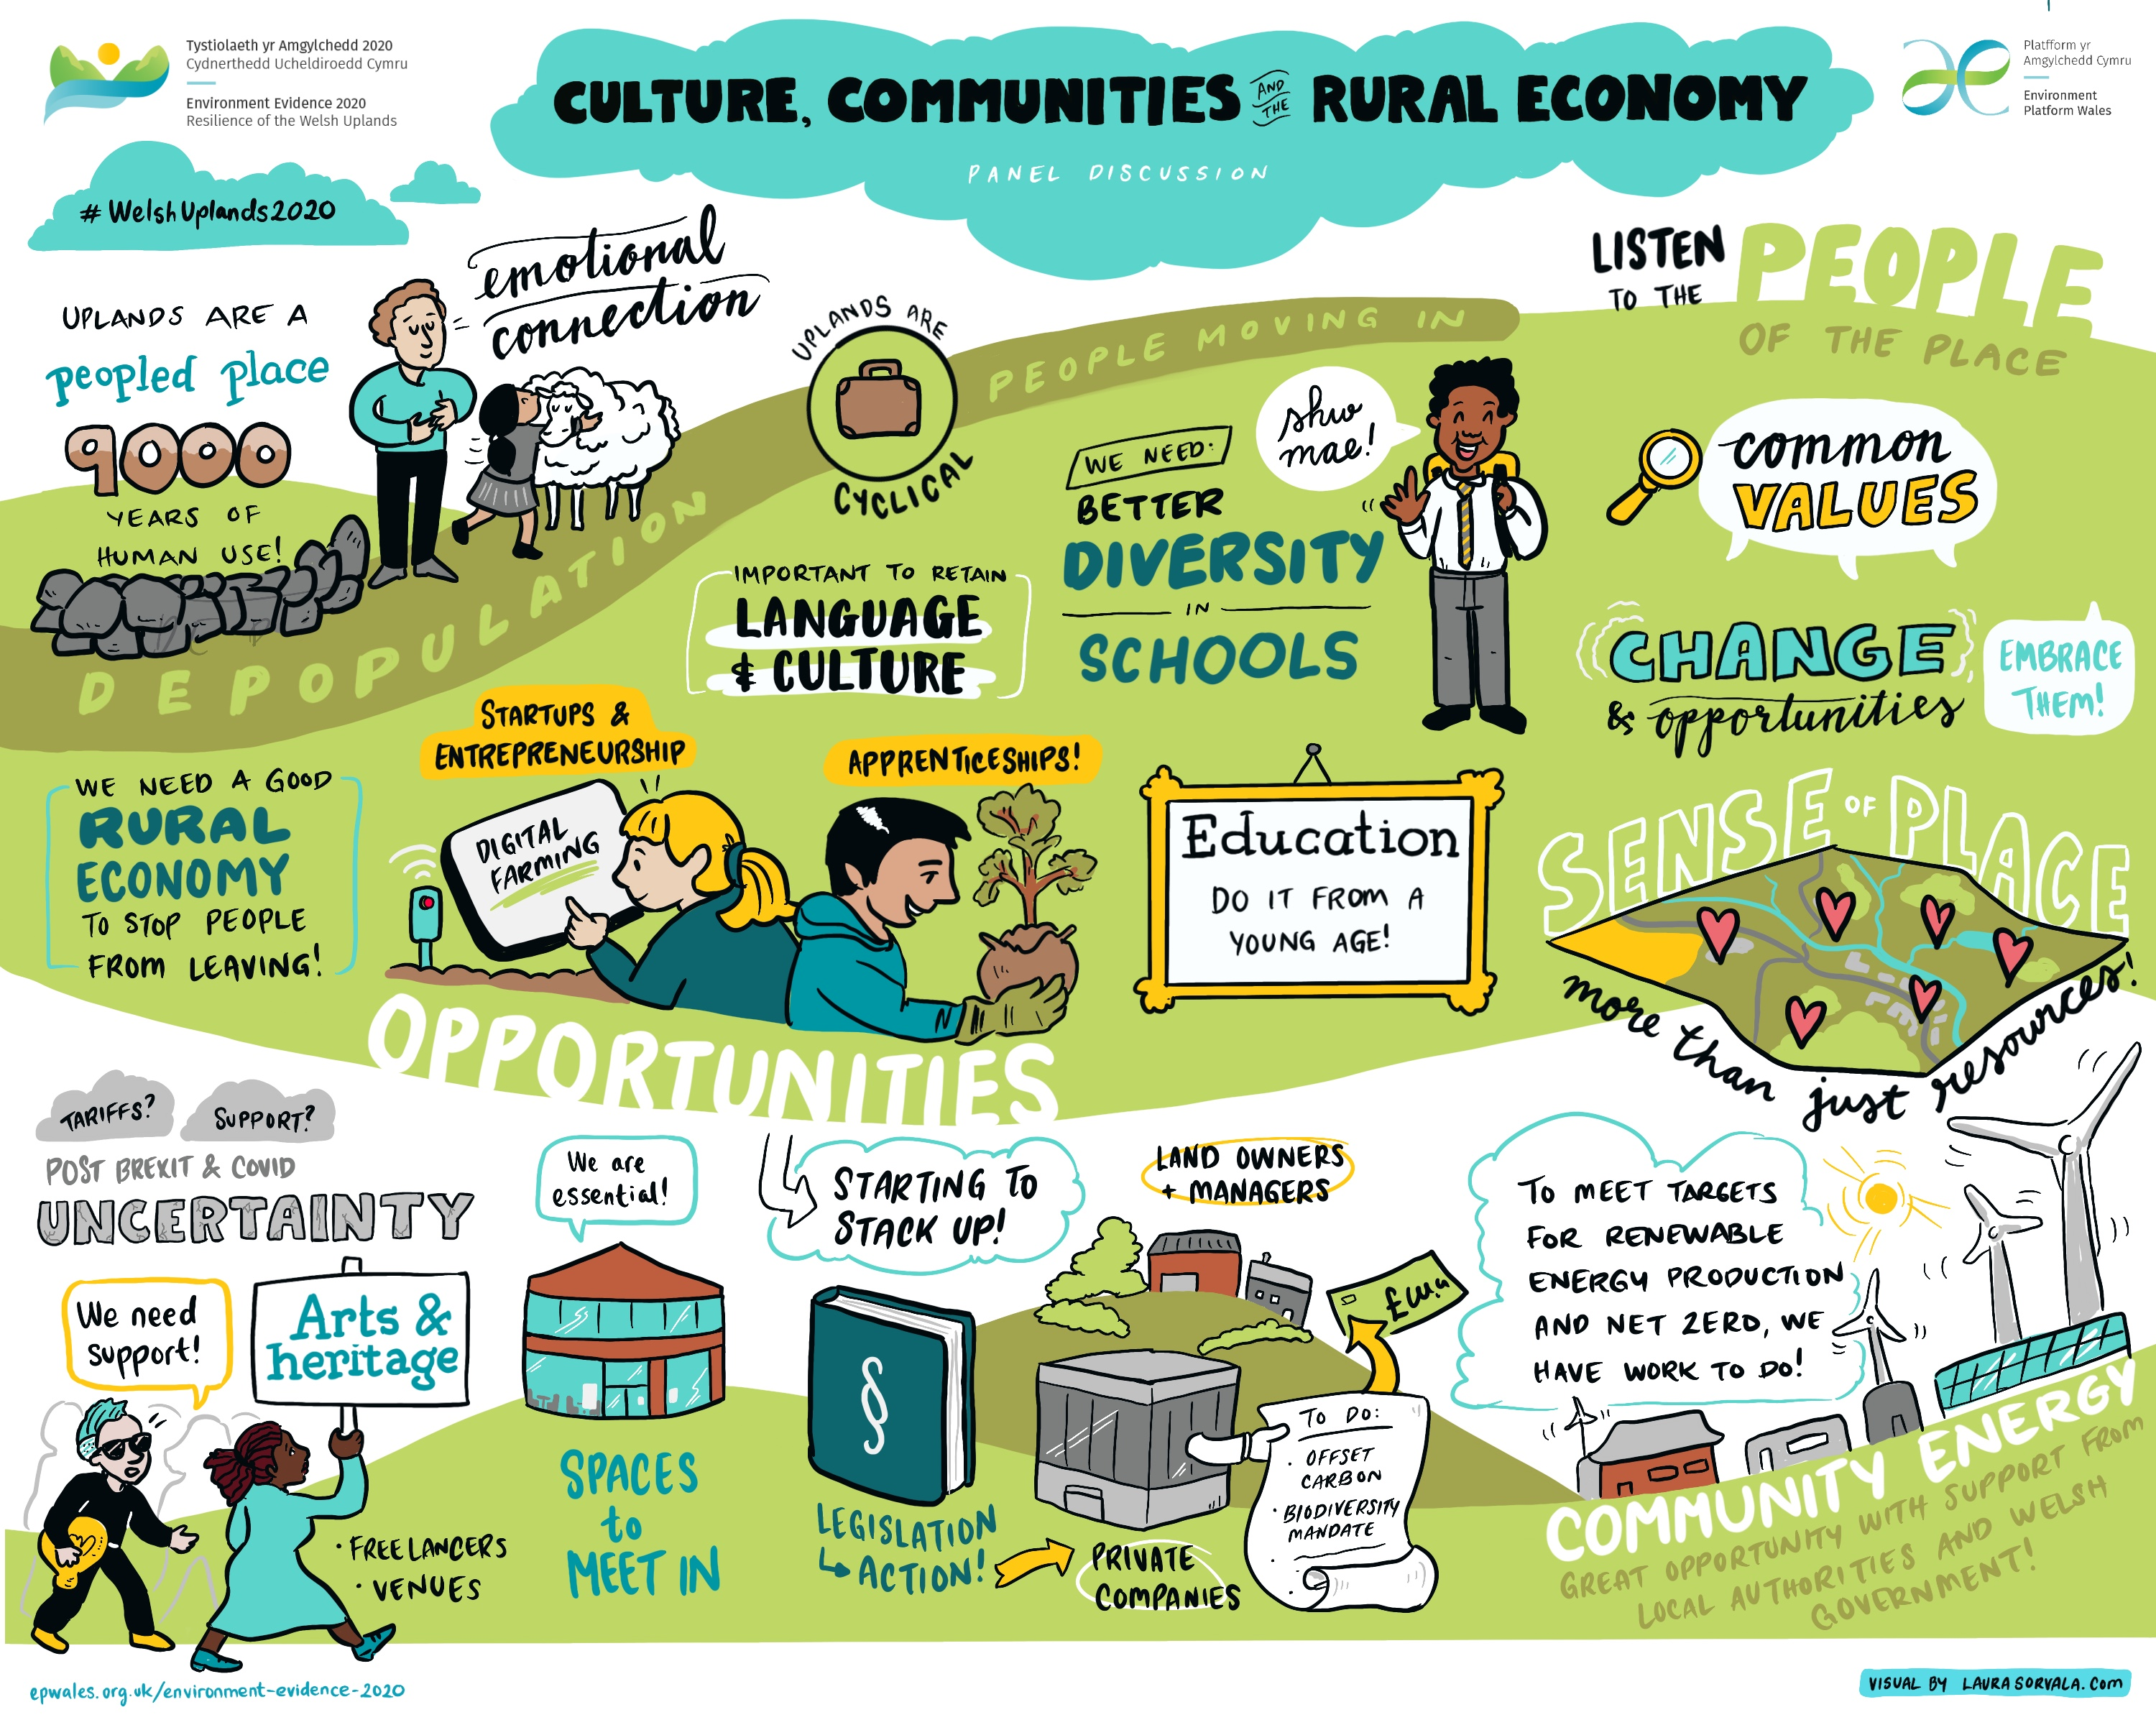 Visual summary of a panel discussion on culture, communities and rural economy in Wales.